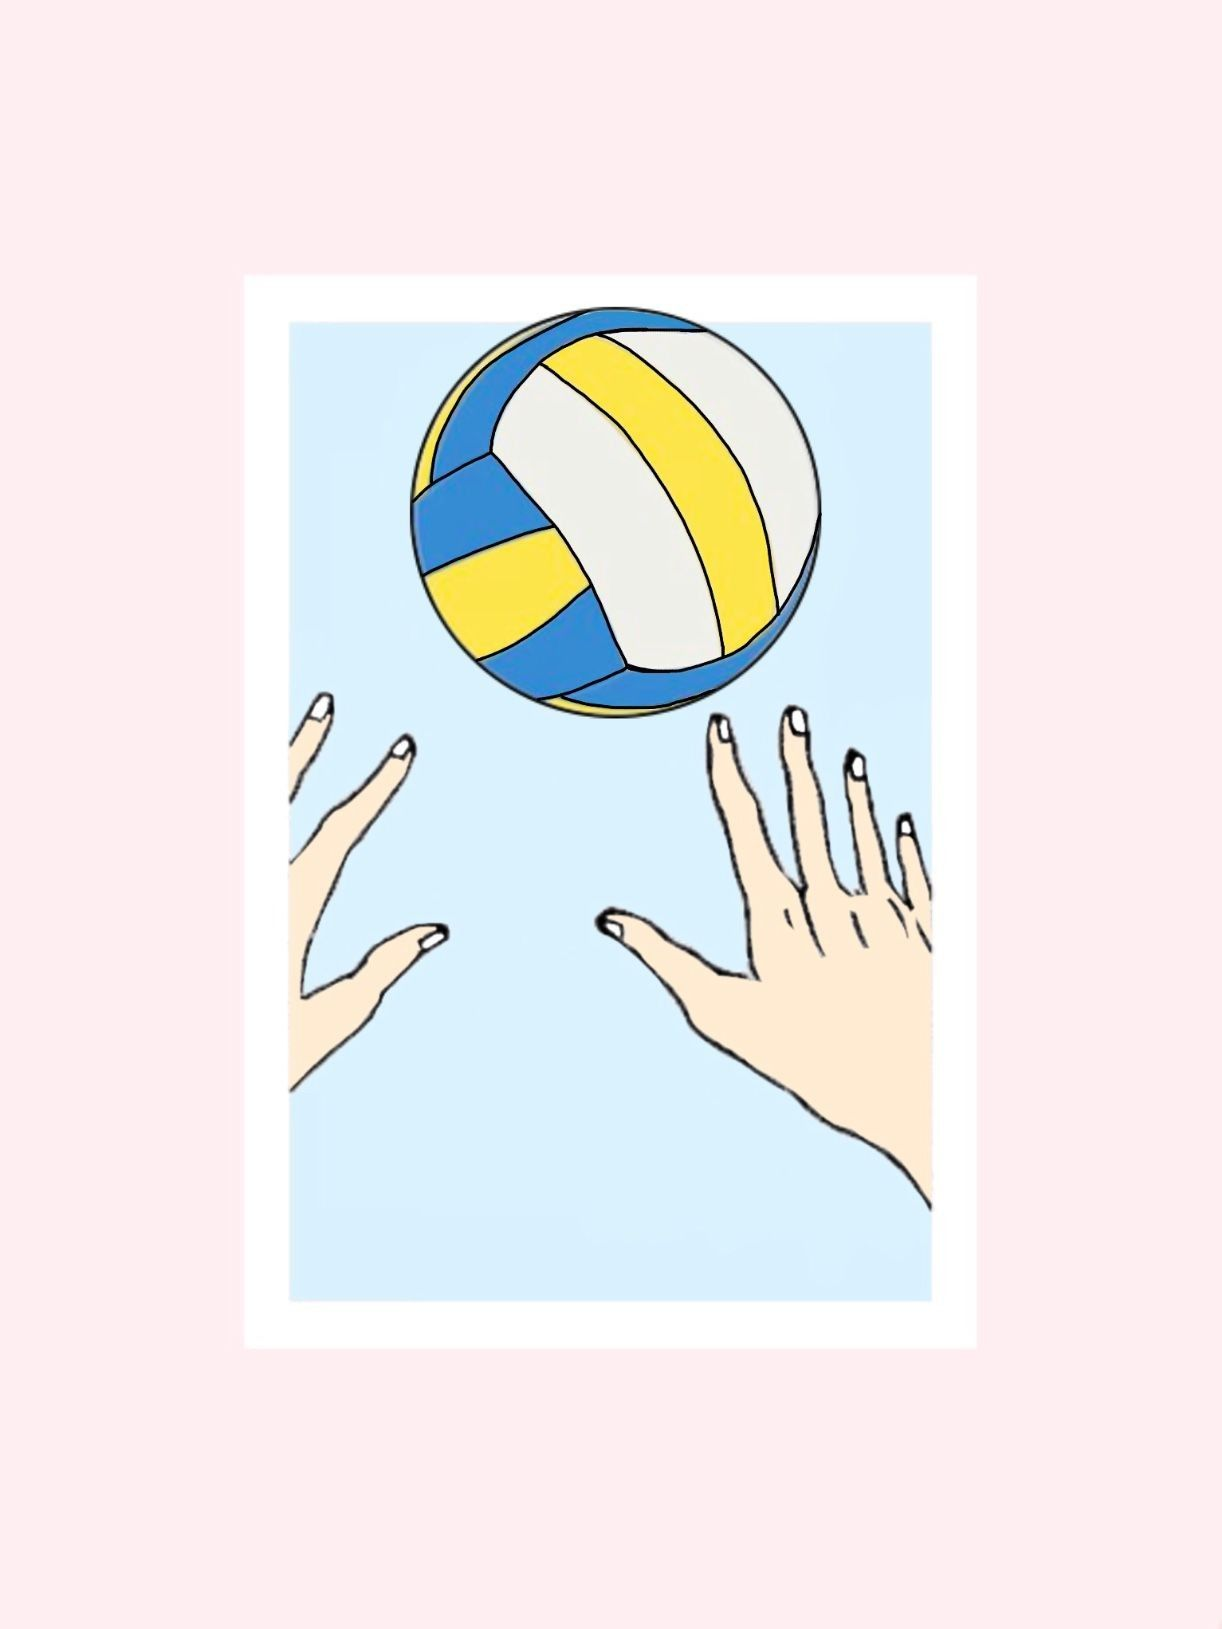 Beautiful Volleyball Wallpaper Iphone Volleyball Wallpaper Blue Wallpaper Iphone Cool Blue Wallpaper